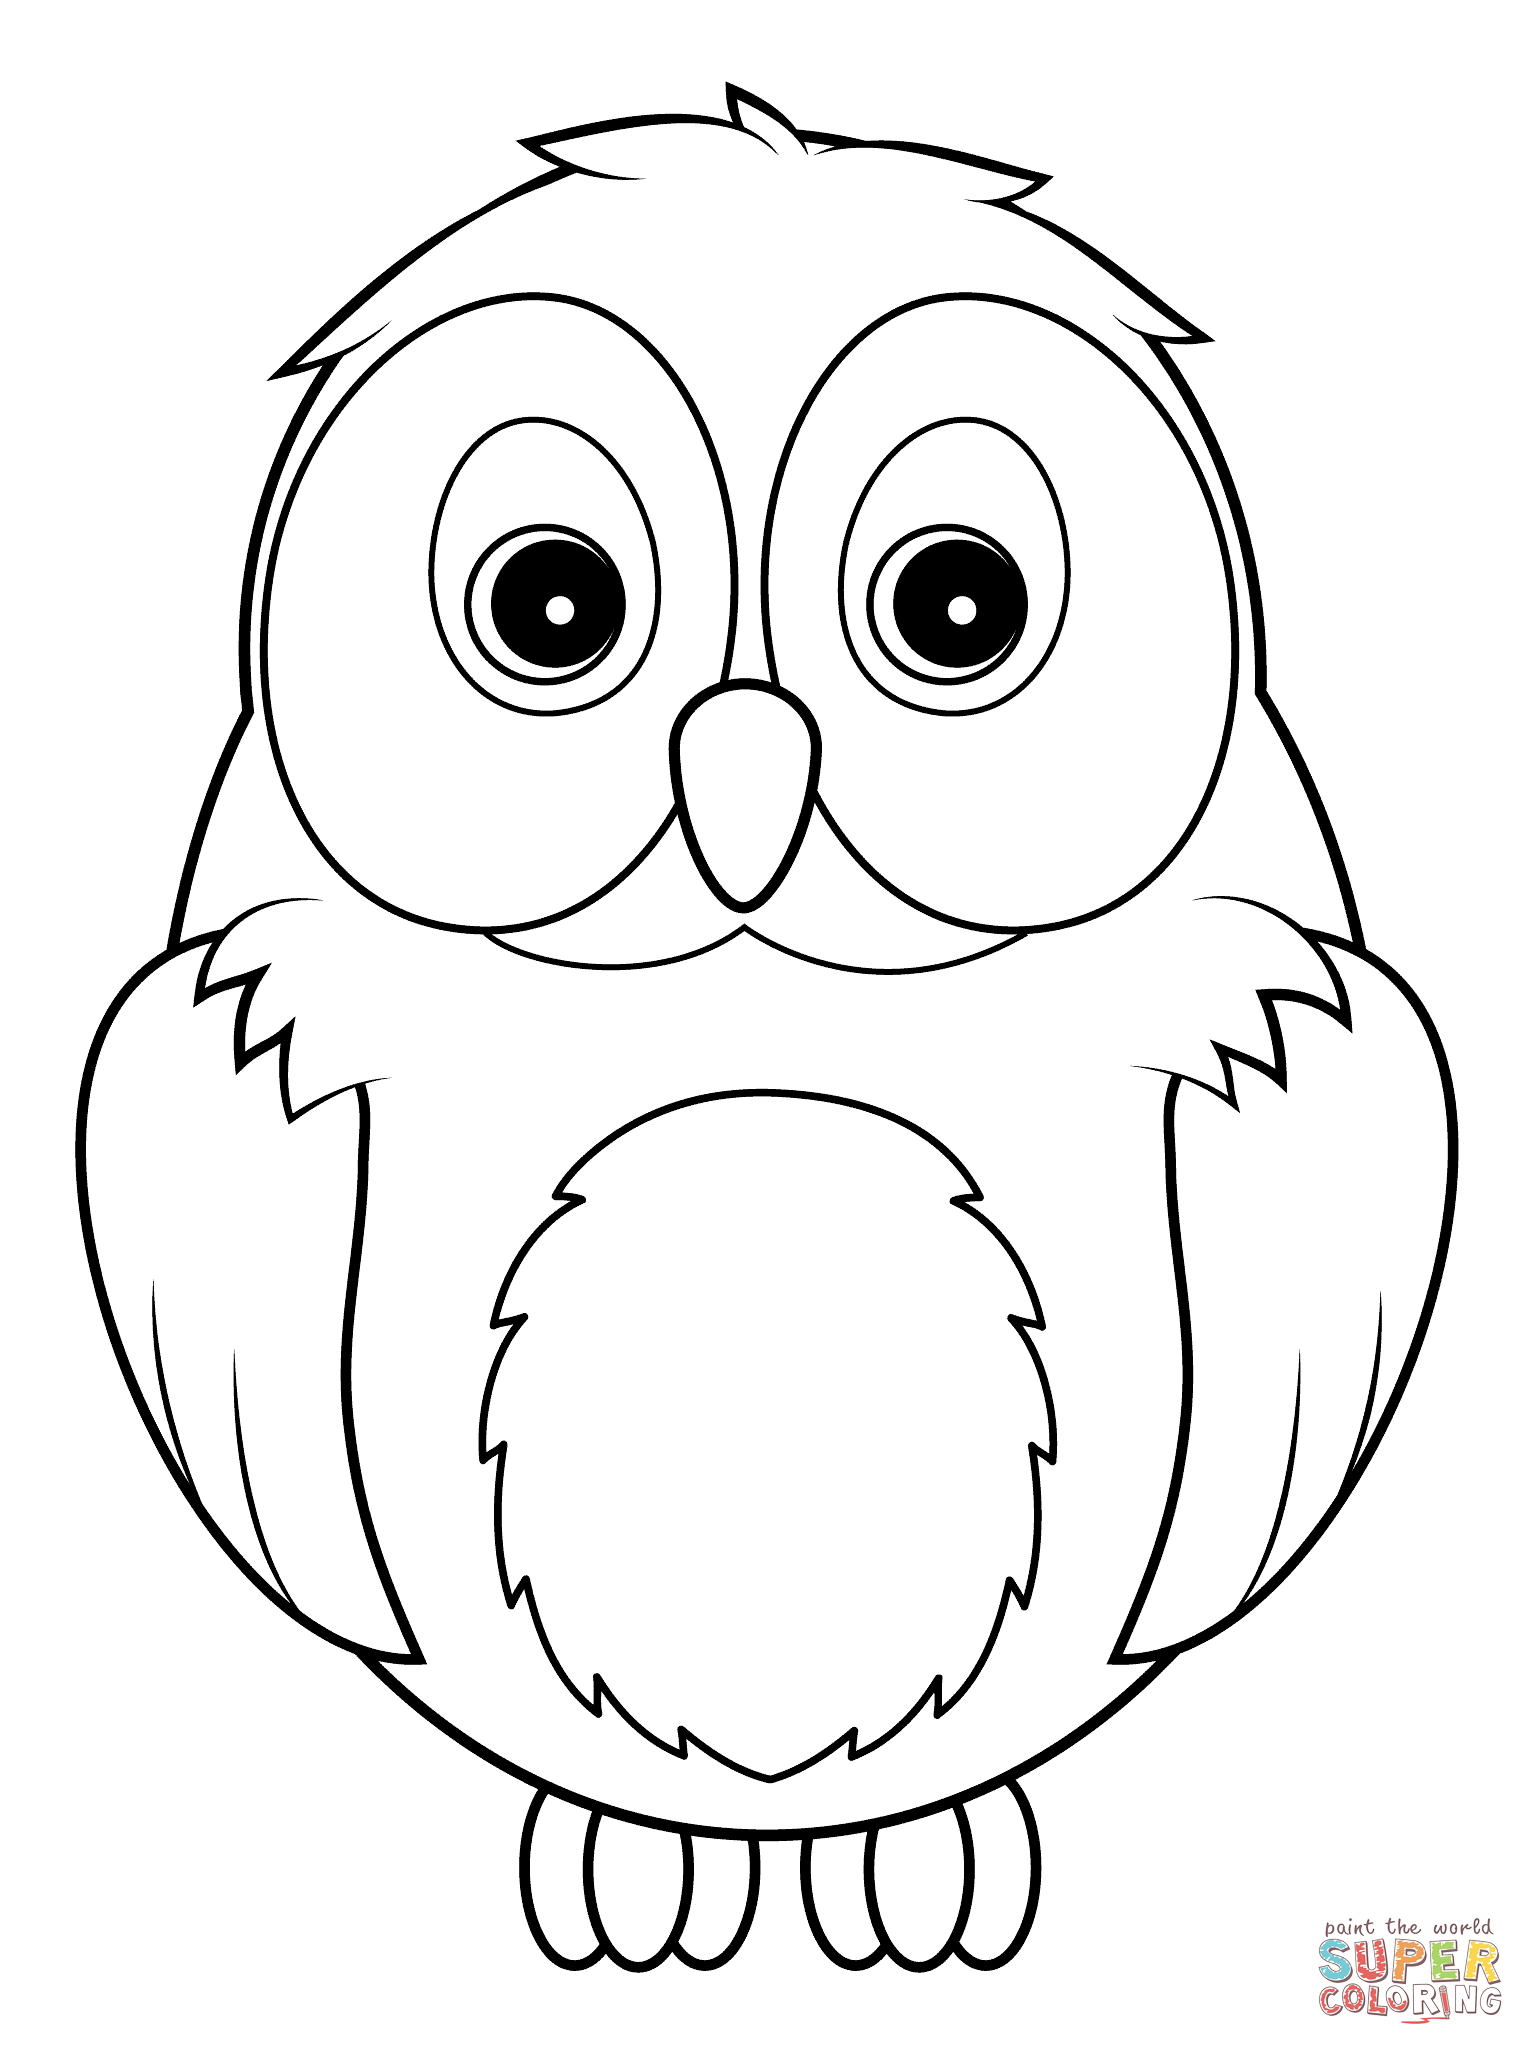 owl coloring pages free printable cool owl coloring pages coloring home owl pages free coloring printable